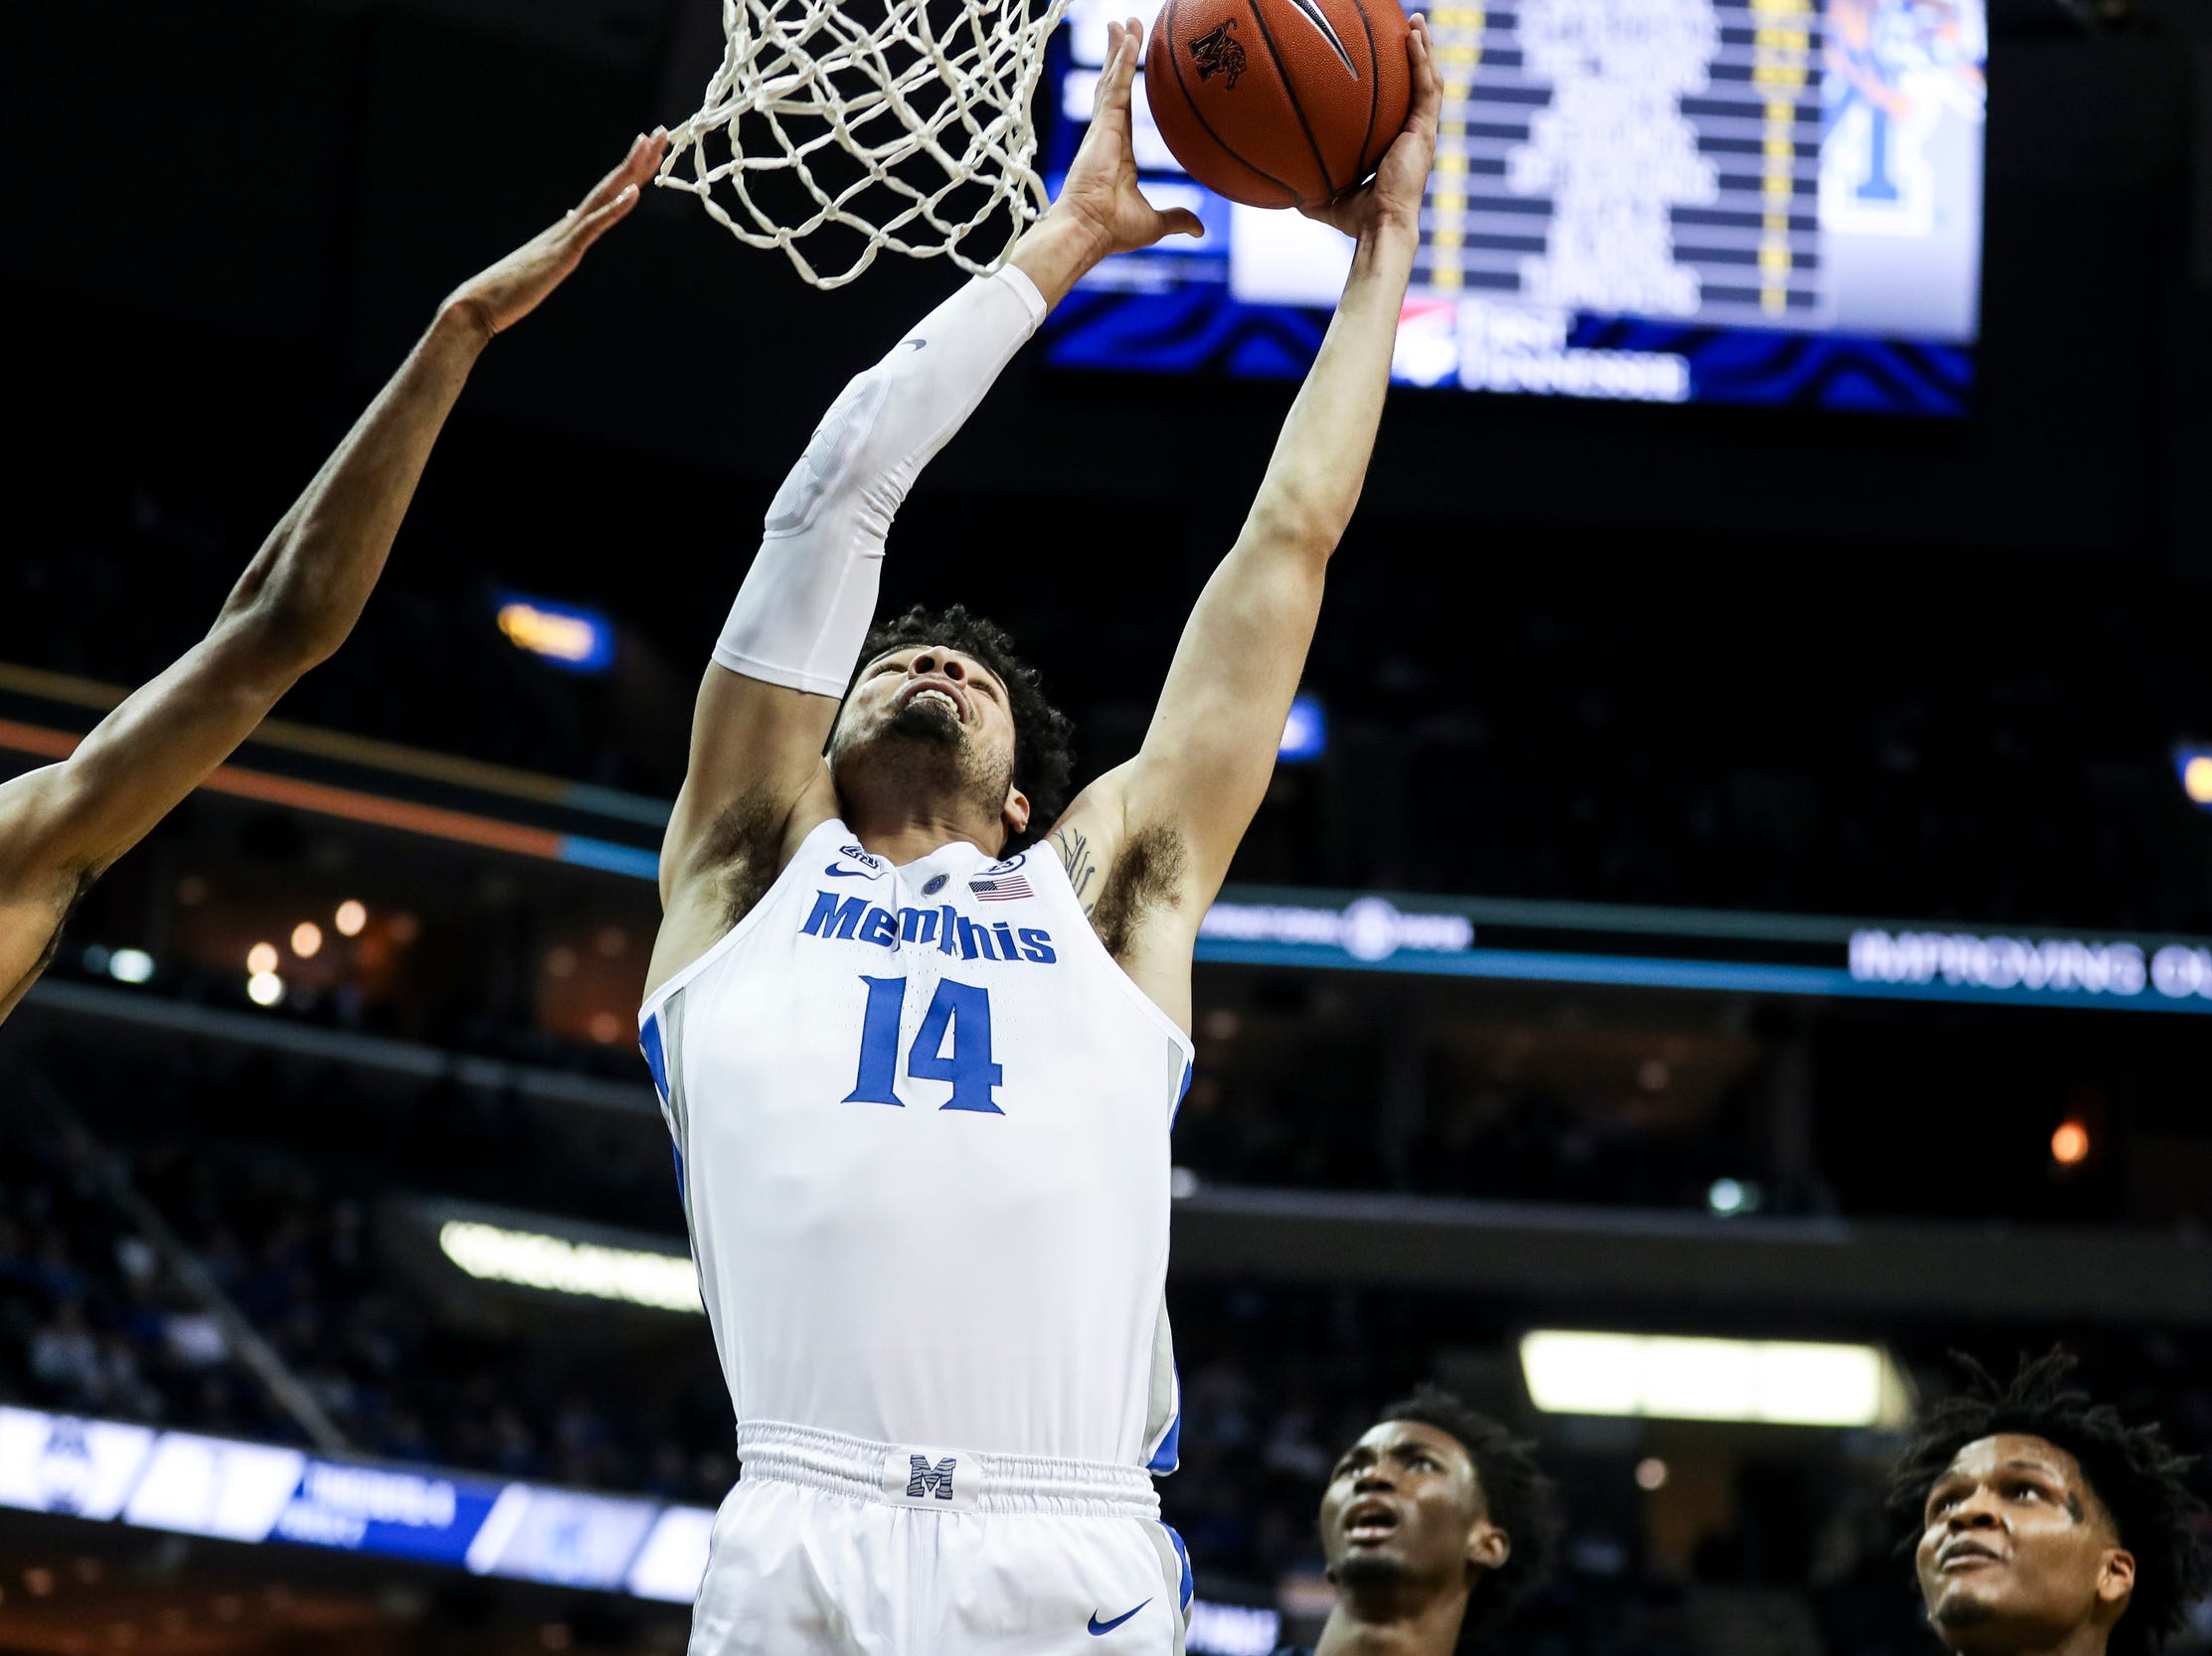 February 10, 2019 - Memphis' Isaiah Maurice attempts a shot during Sunday's game versus Connecticut at the FedExForum.